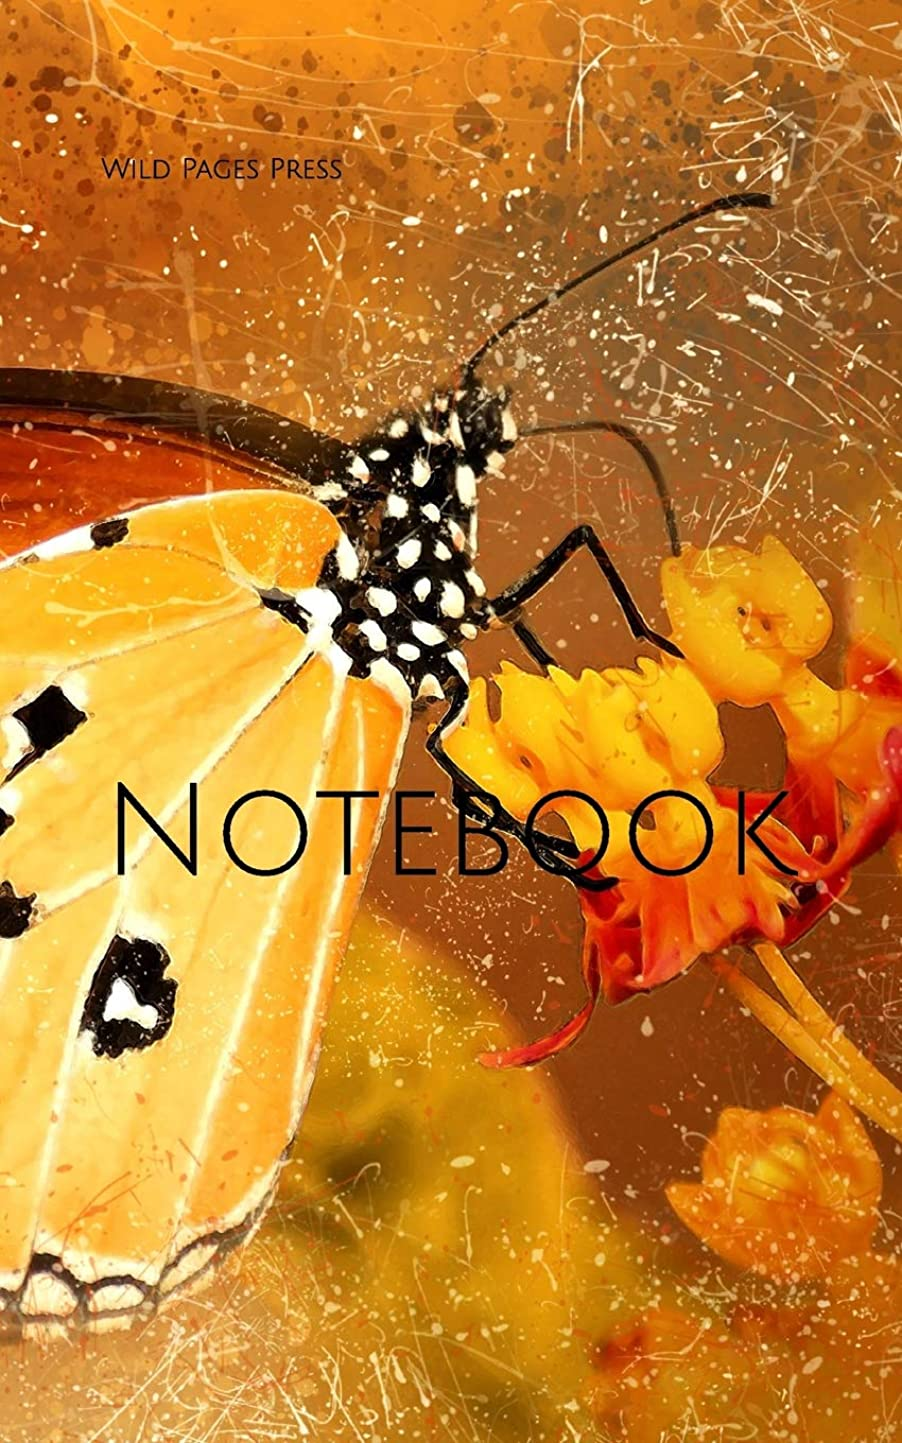 脚本家スペル財政Notebook: butterfly insect small flower plant nature cocoon caterpillar blossom butterflies insects